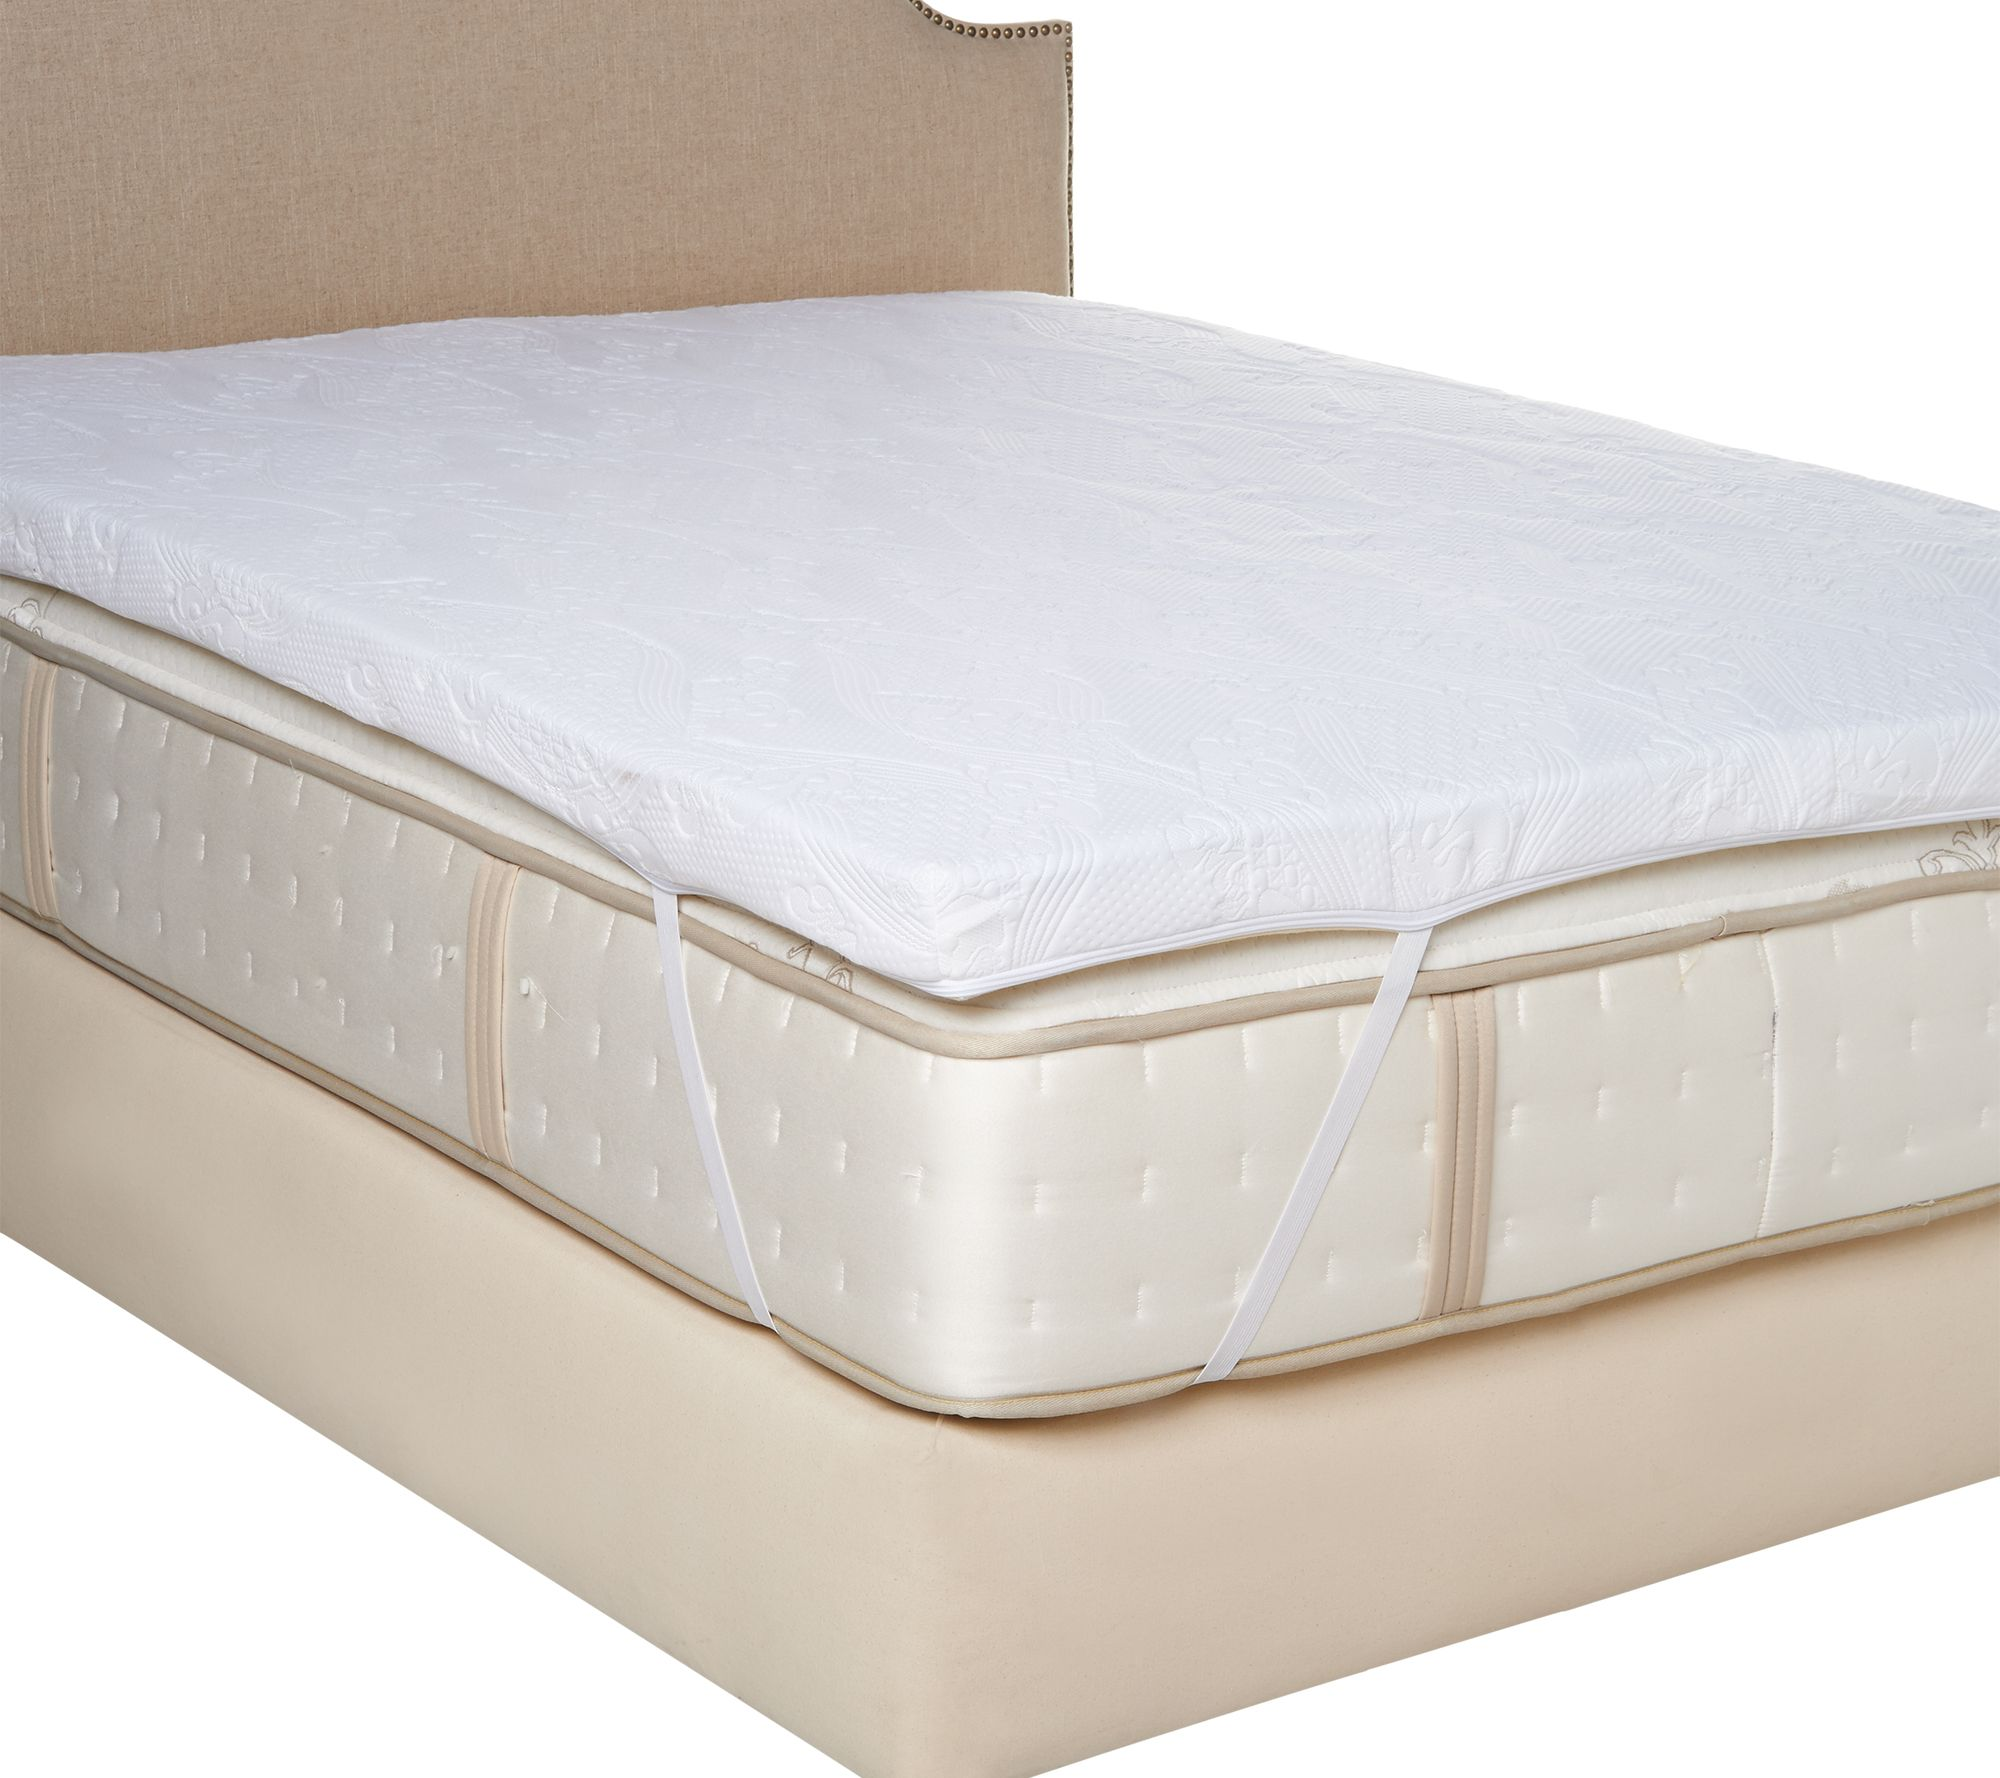 MyPillow Premium 3  Calif  King Mattress Topper w   Gel   Cover     King Mattress Topper w   Gel   Cover   Page 1     QVC com